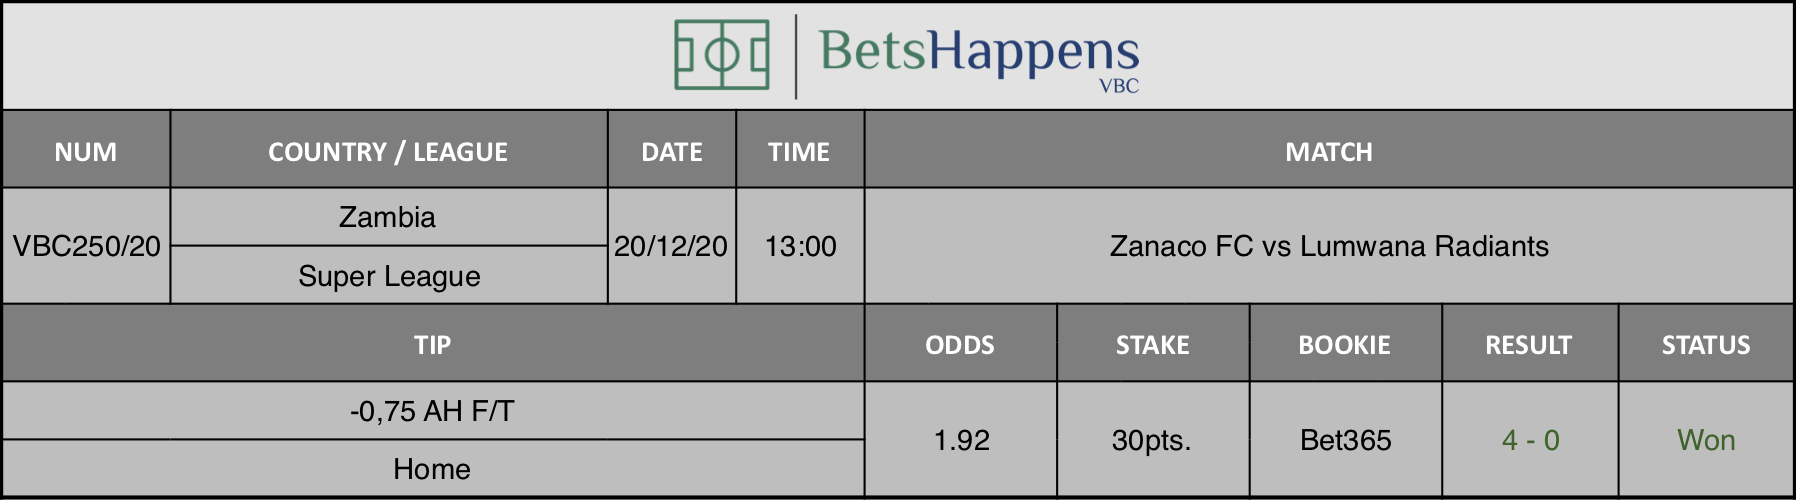 Results of our tip for the Zanaco FC vs Lumwana Radiants match where -0,75 AH F/T Home is recommended.